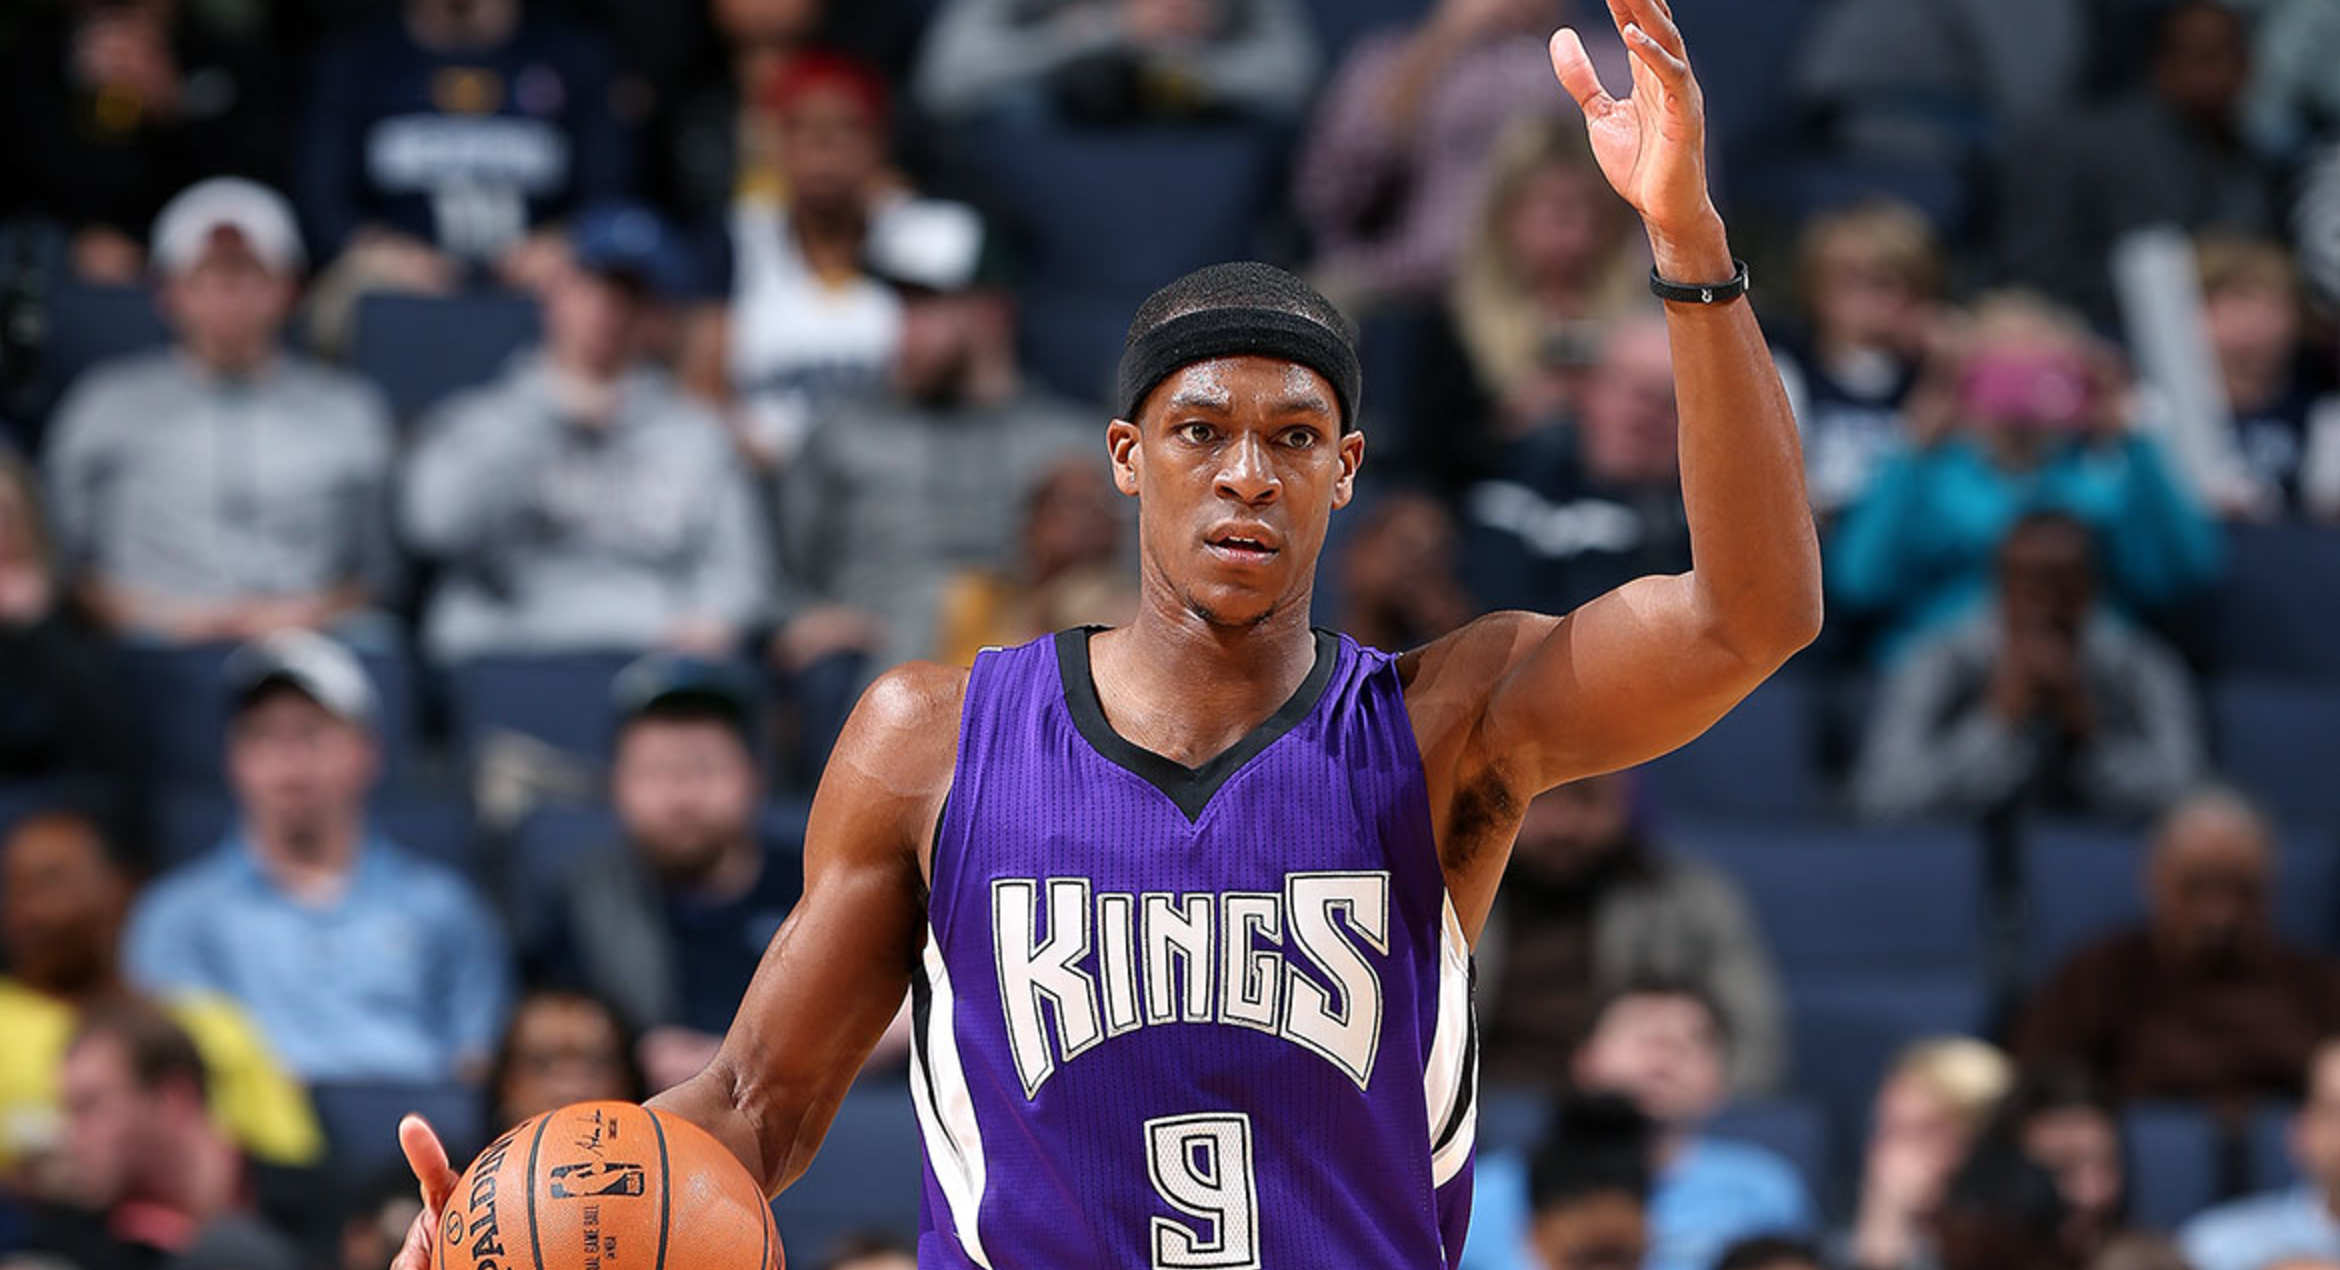 http://i.cdn.turner.com/drp/nba/kings/sites/default/files/styles/hi_res_full_width/public/rondo_11.jpg?itok=GbFnDKnK